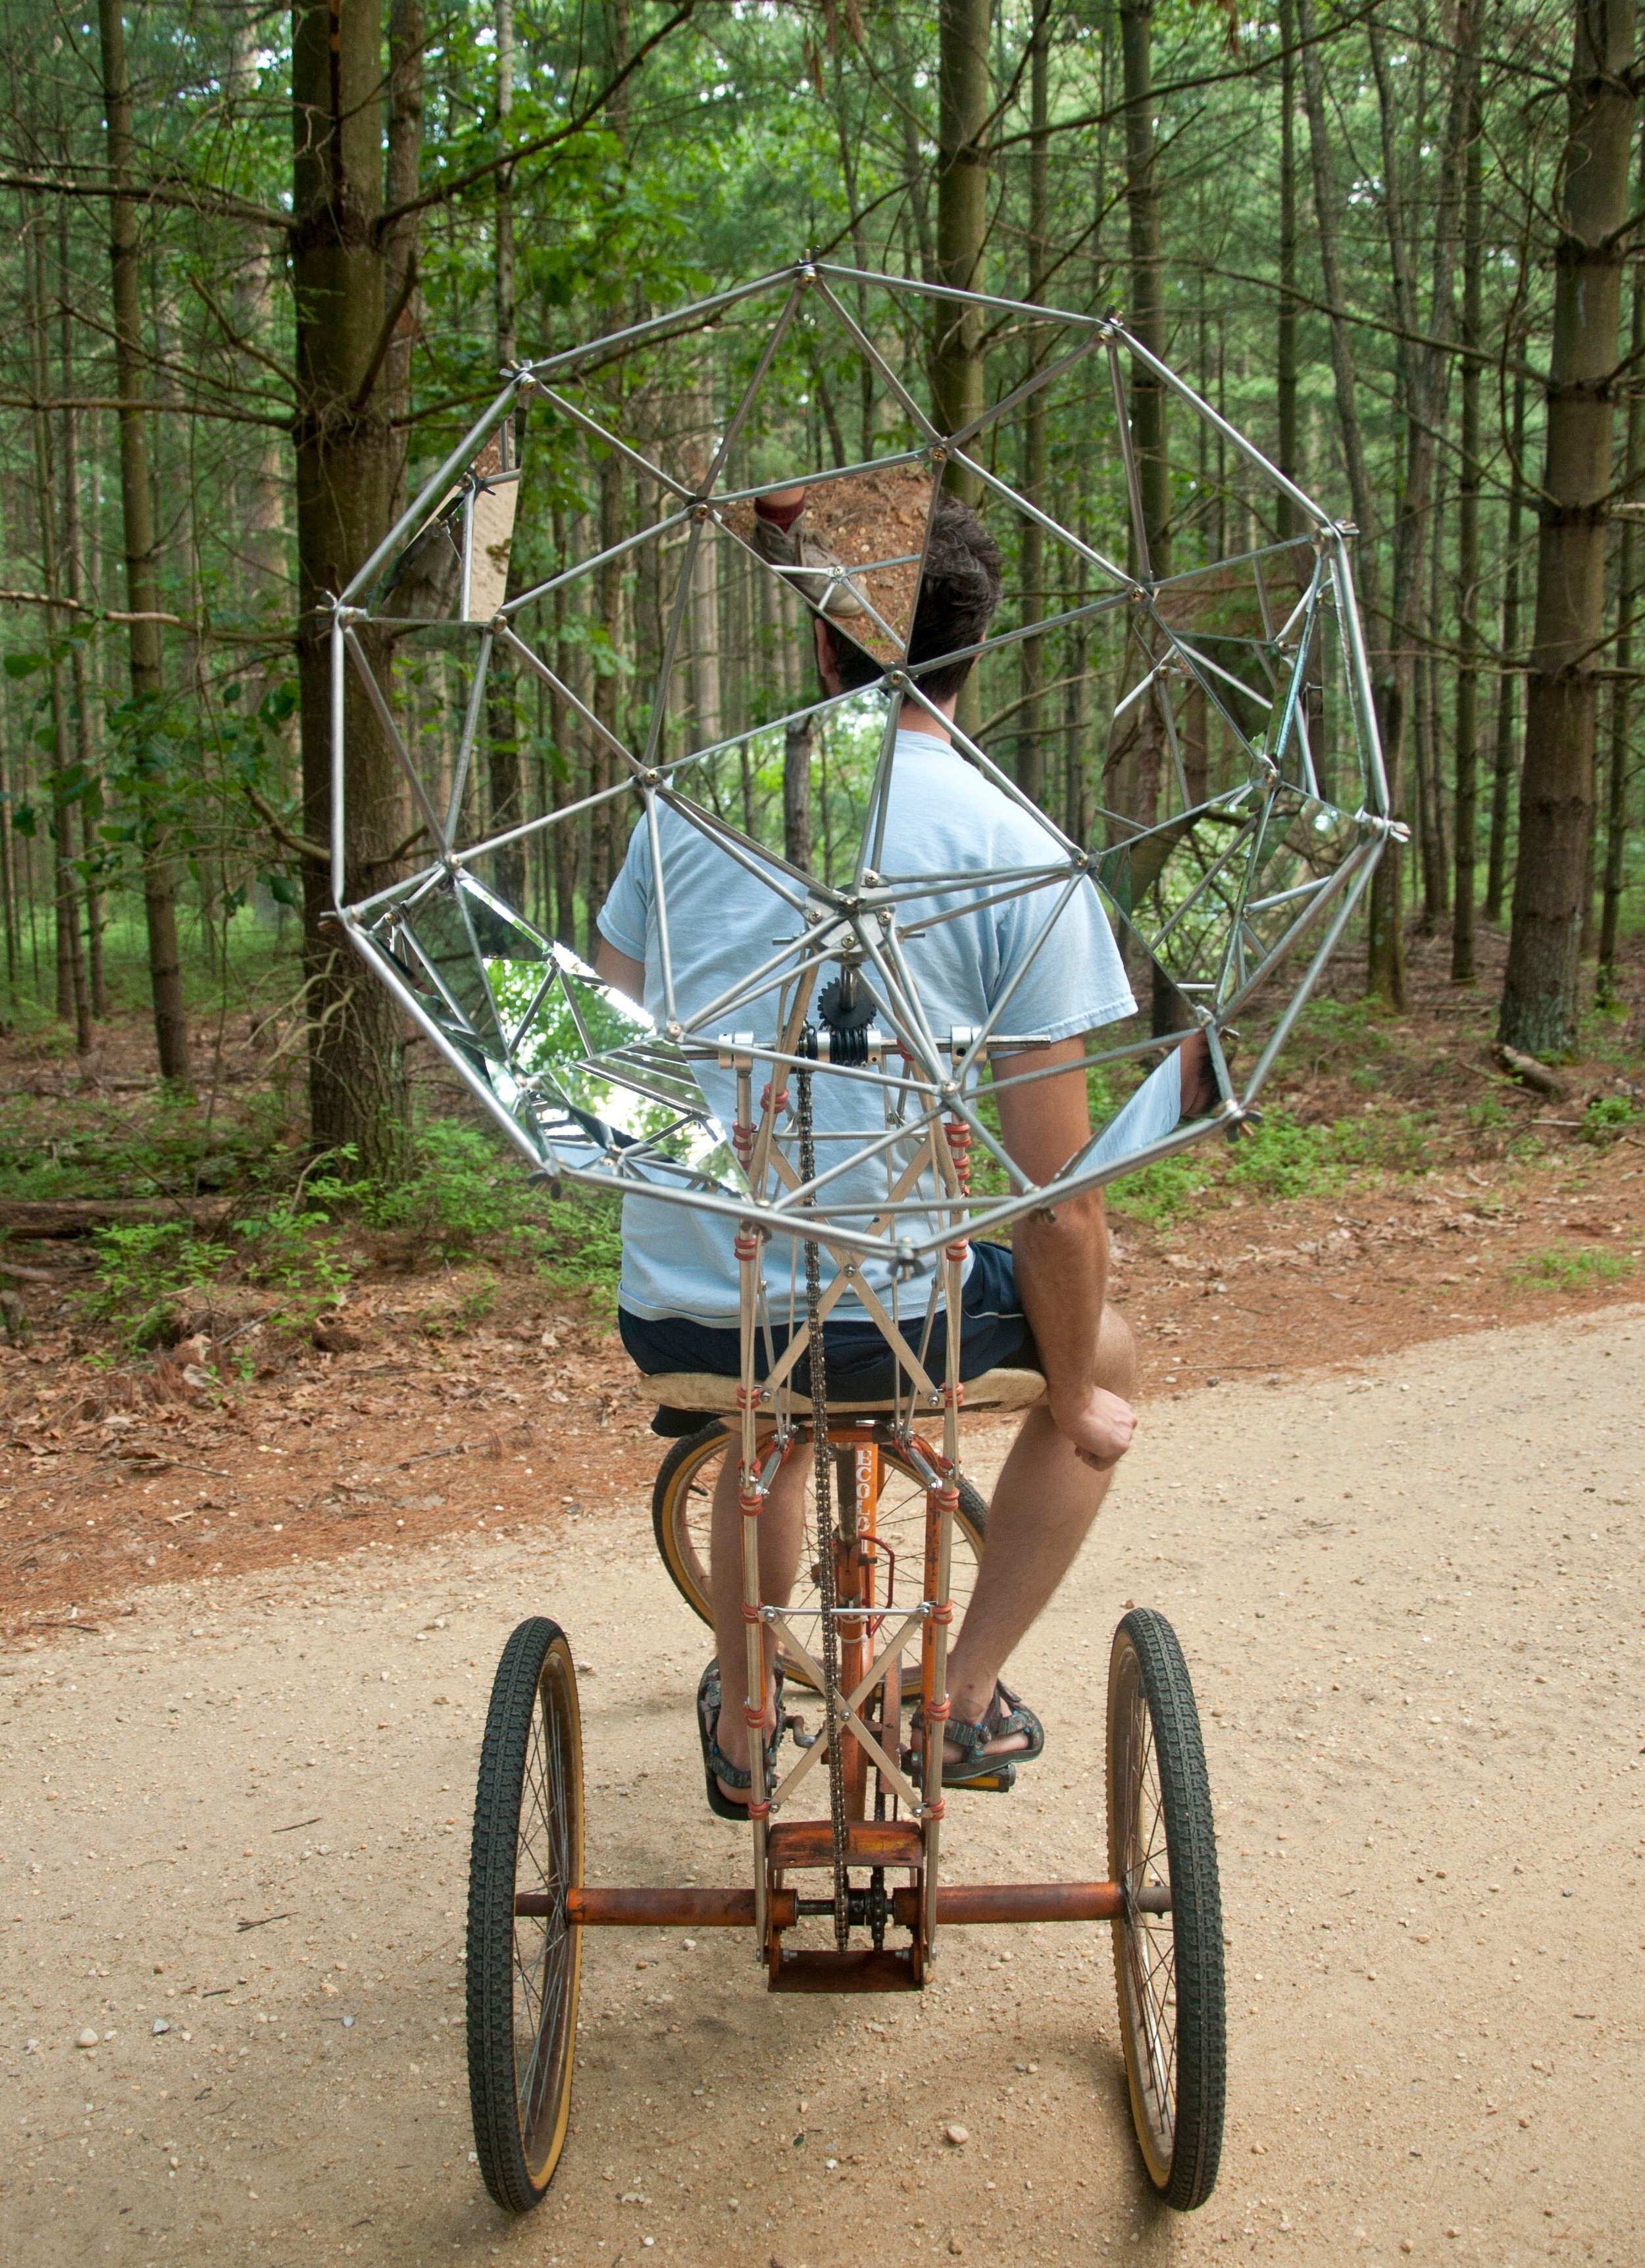 Nate Ricciuto,  A Stable Foundation , 2016, Mirrored glass, aluminum, fasteners, tricycle